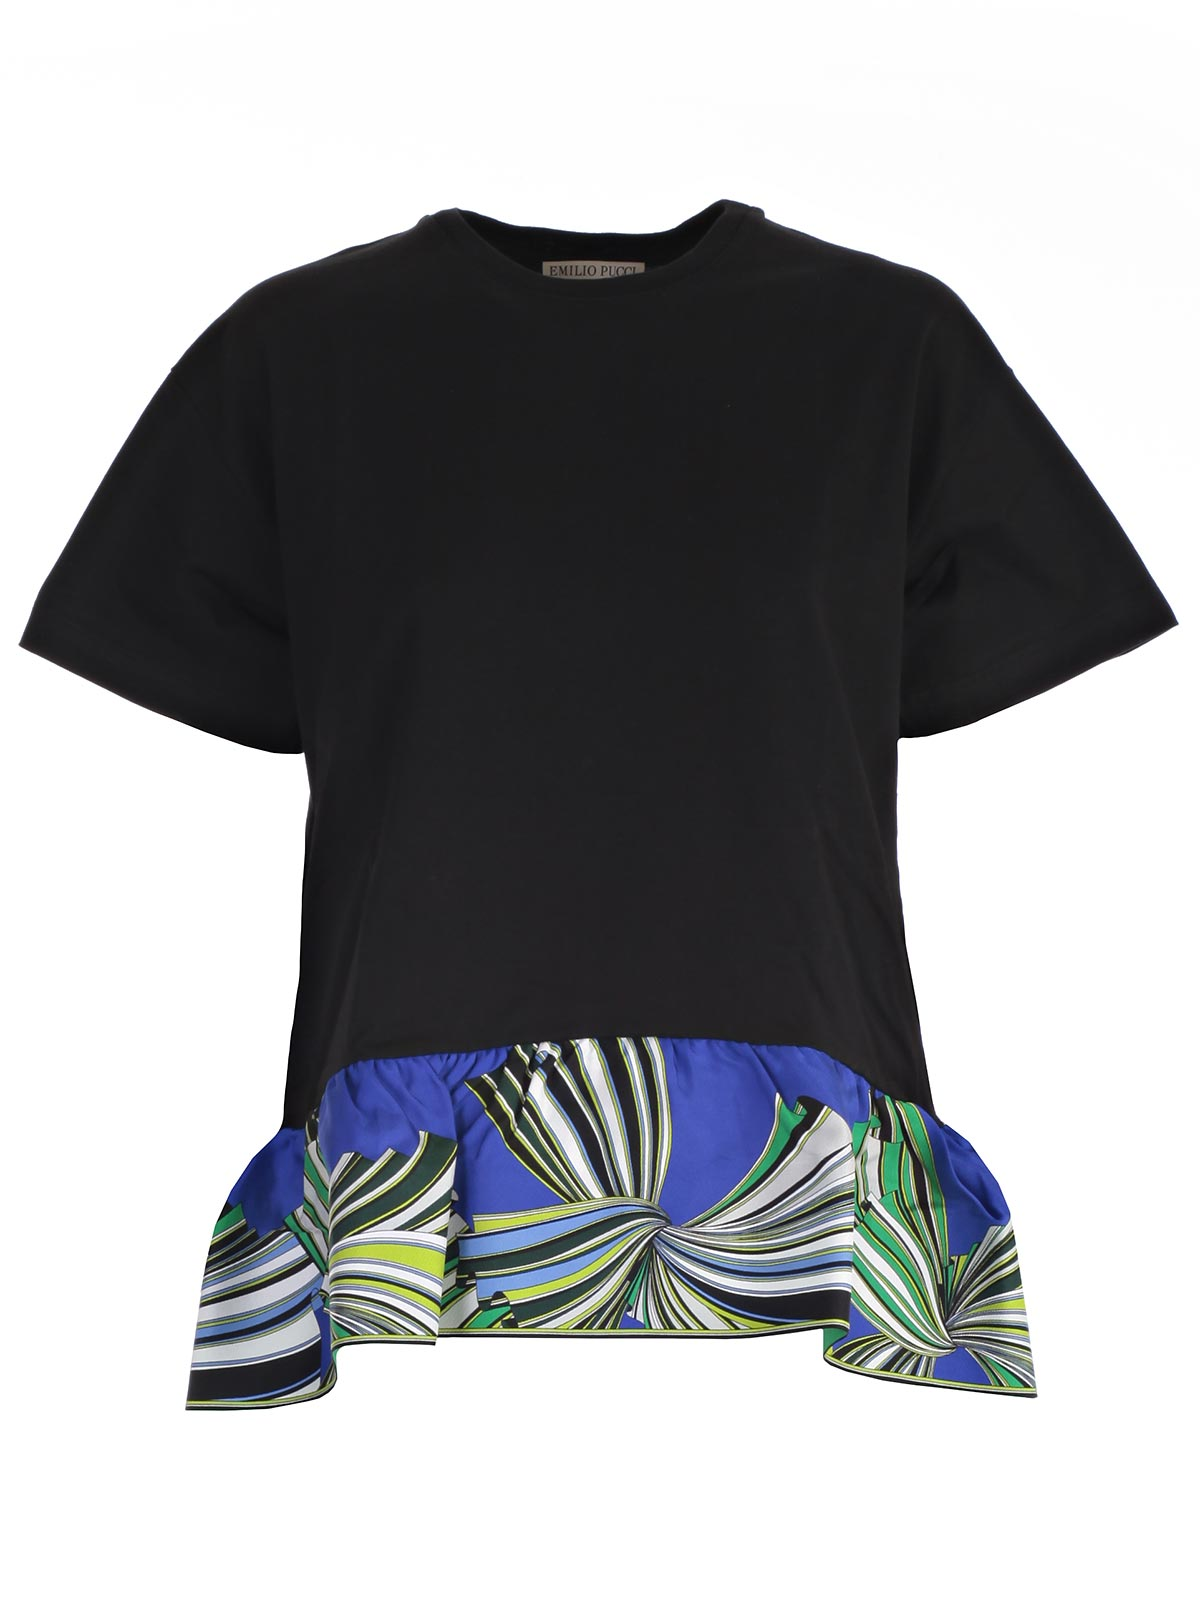 Picture of EMILIO PUCCI T-SHIRT